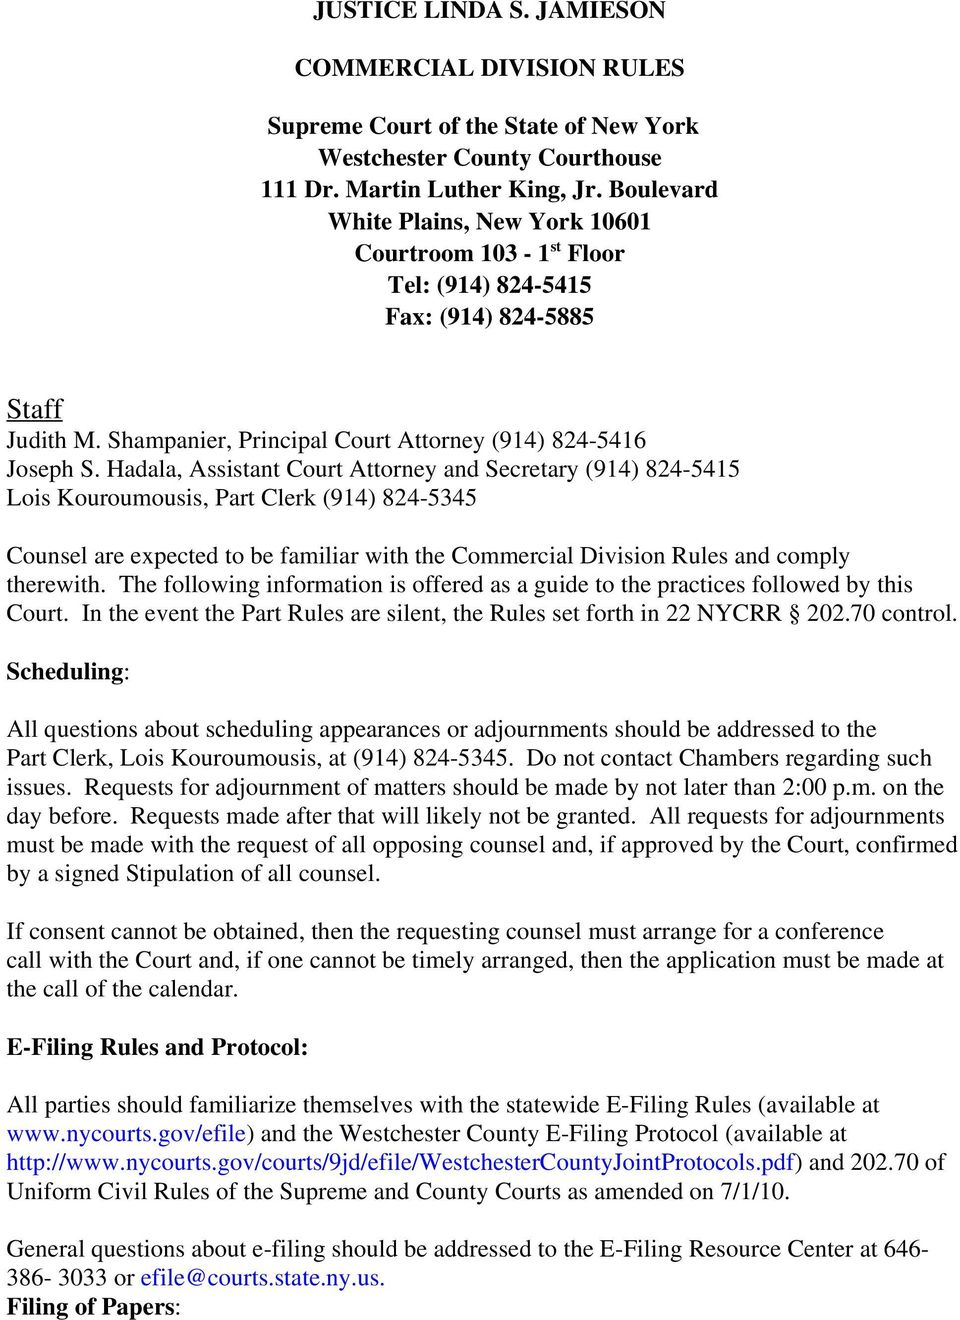 JUSTICE LINDA S  JAMIESON COMMERCIAL DIVISION RULES - PDF